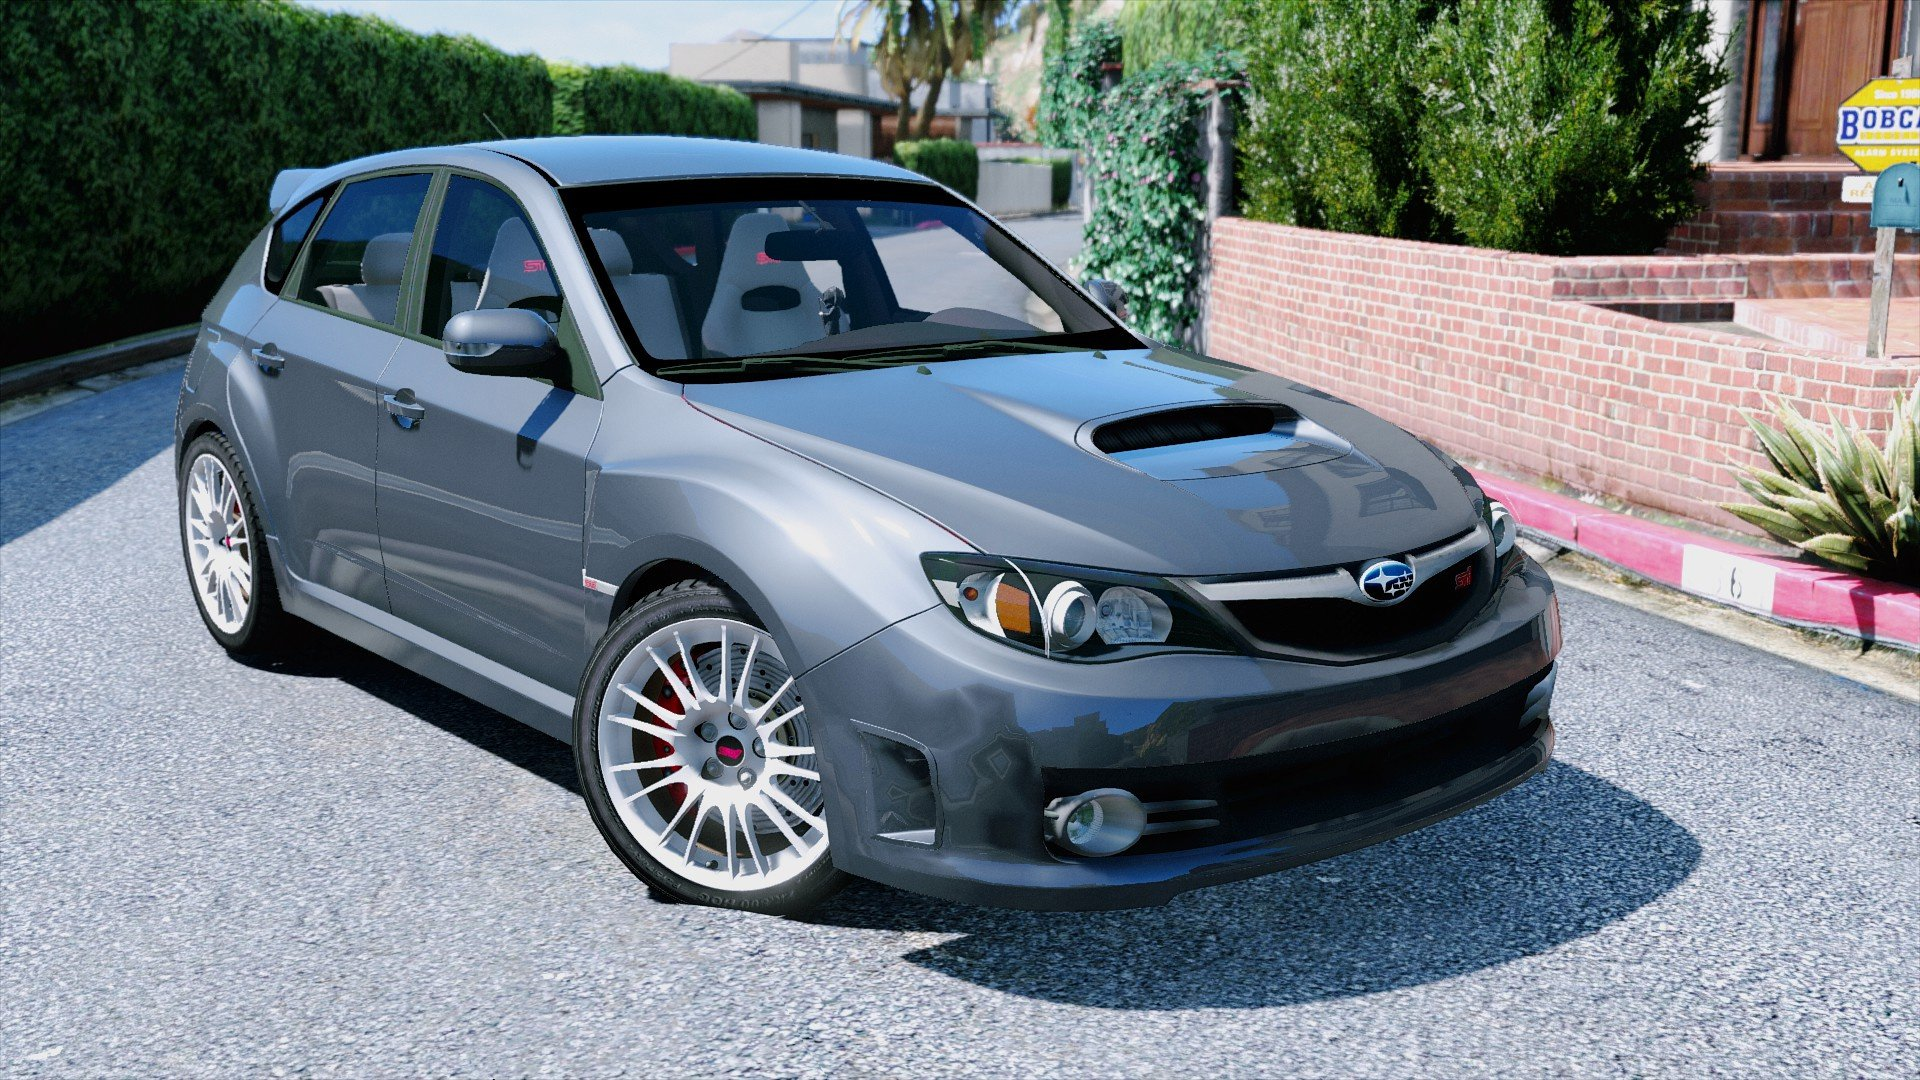 subaru impreza wrx sti gta5. Black Bedroom Furniture Sets. Home Design Ideas